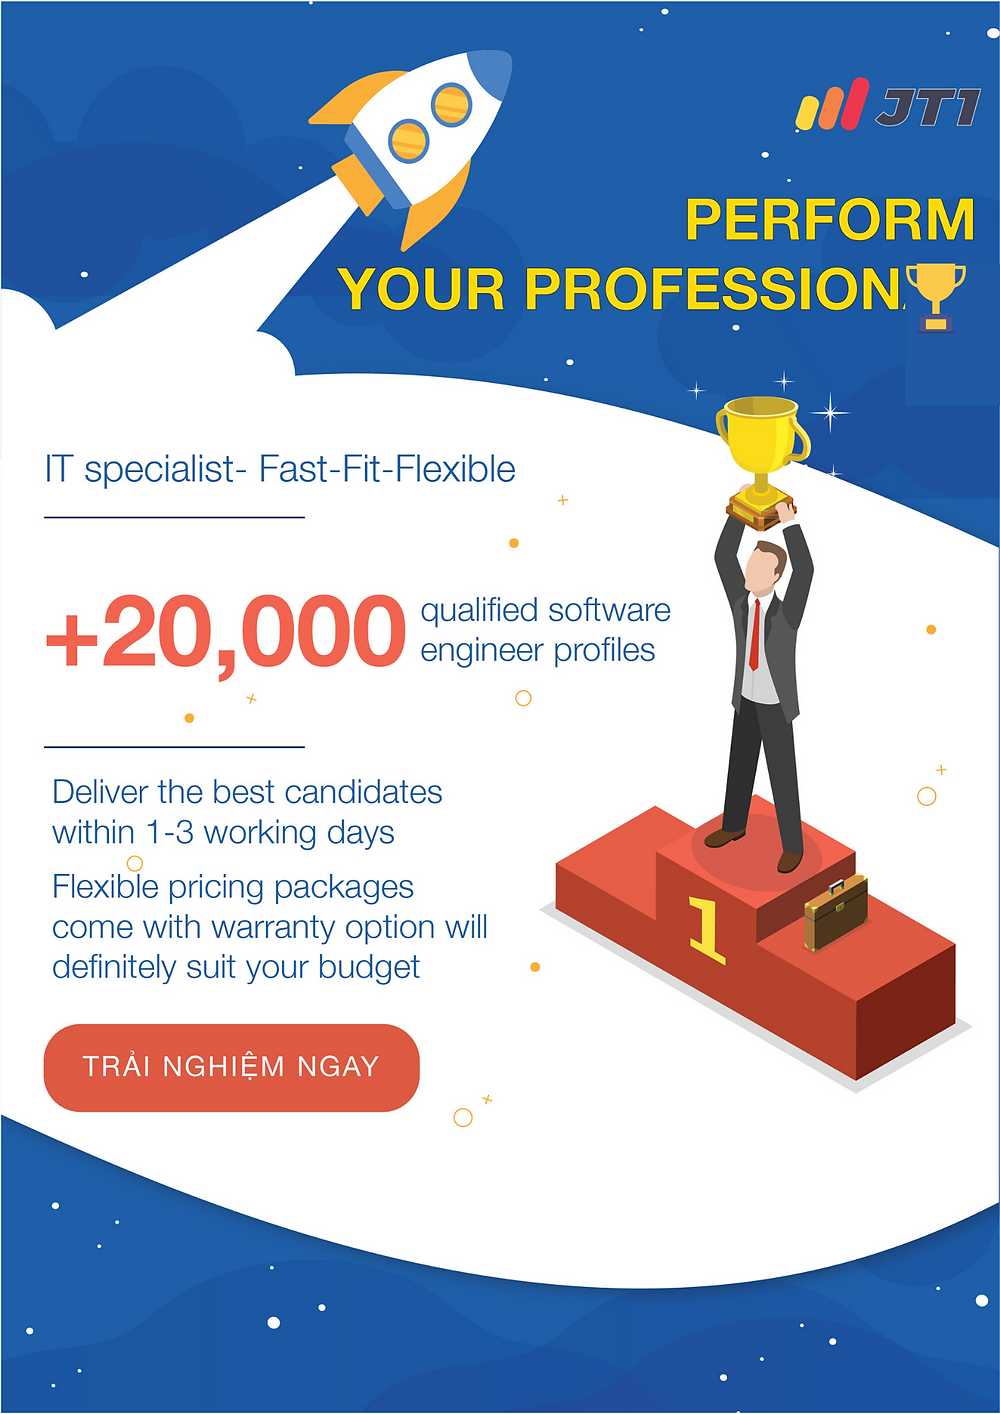 IT specialist - Fast - Fit - Flexible